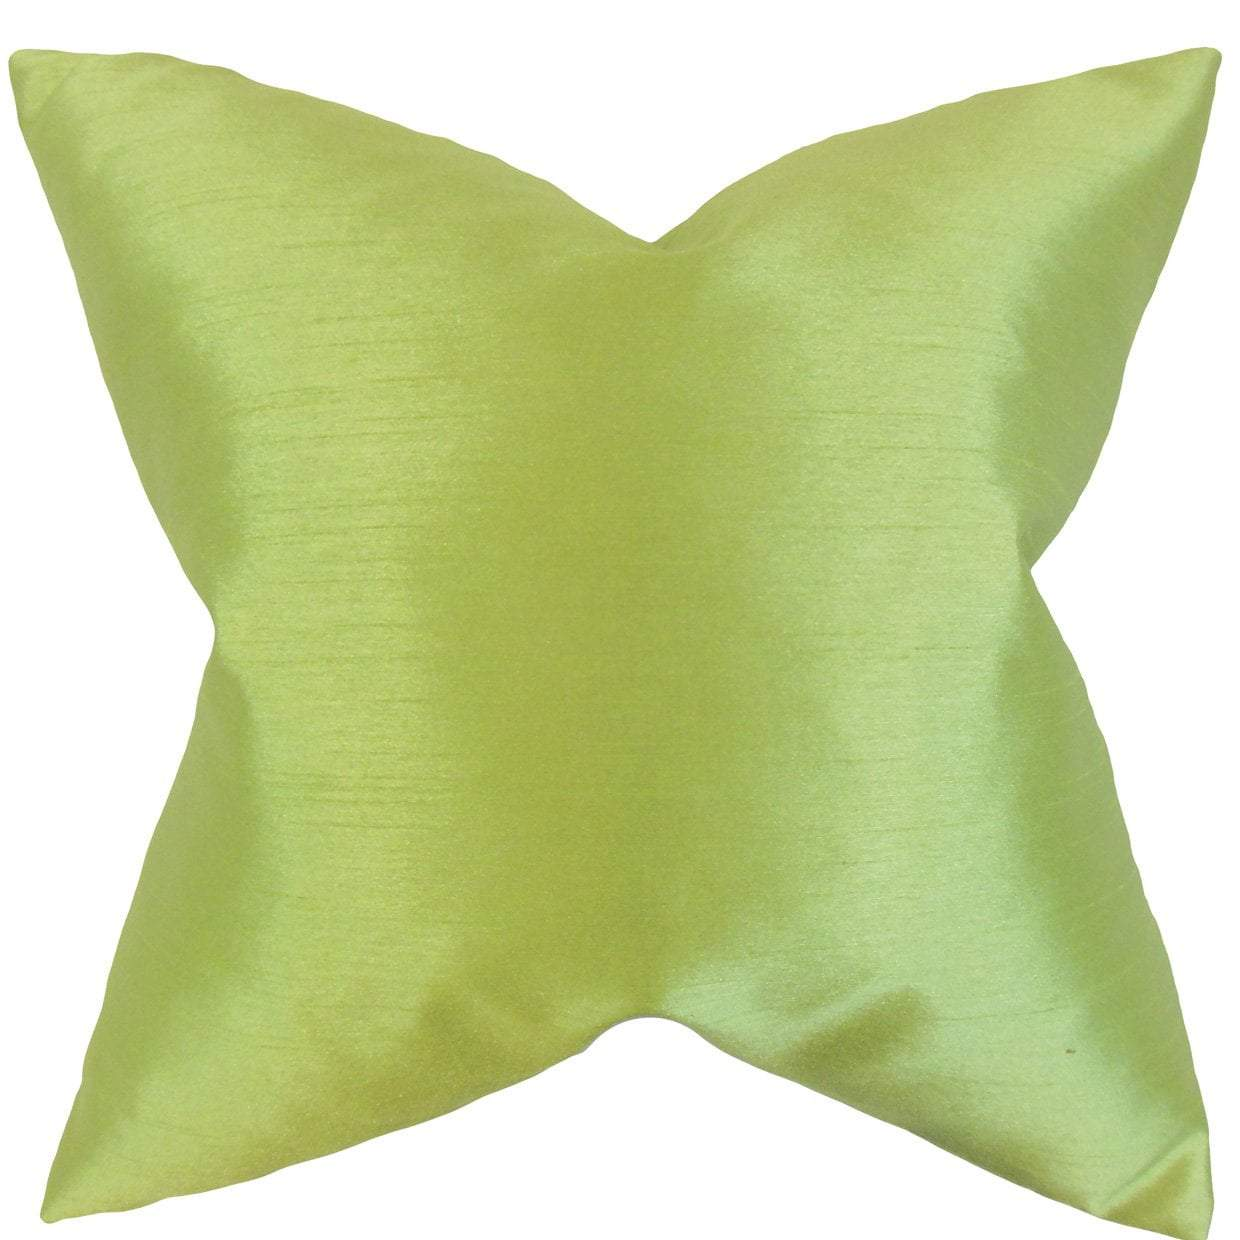 Green Synthetic Solid Luxe Throw Pillow Cover